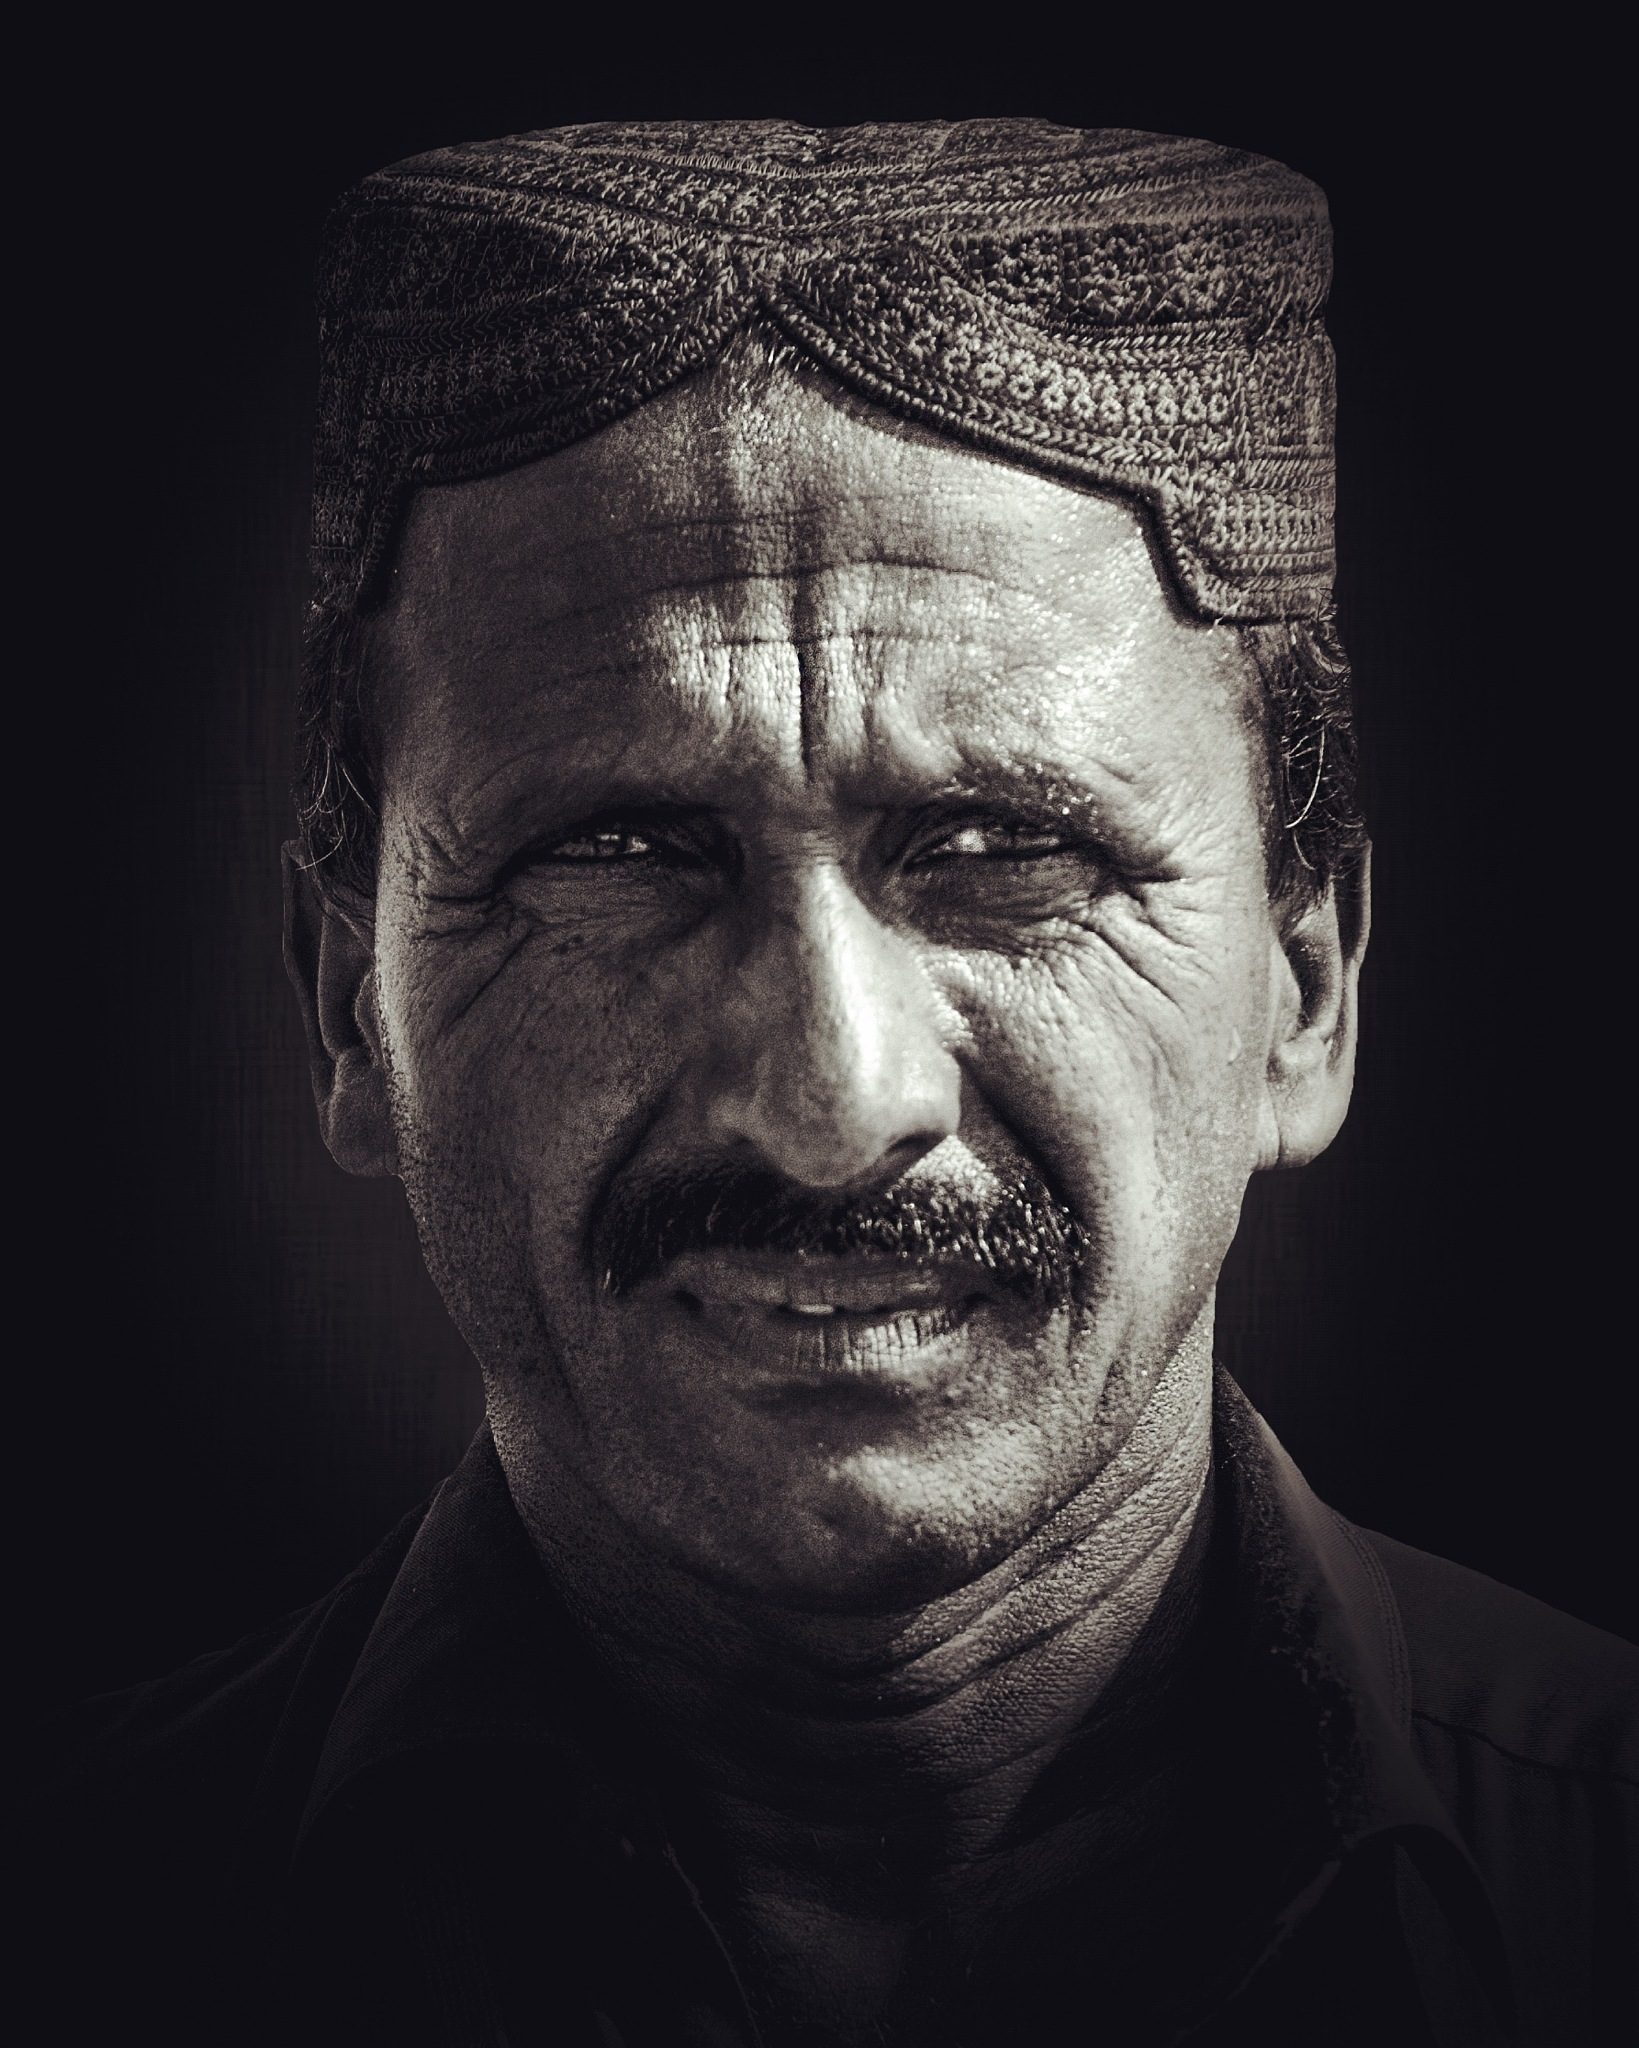 portrait by Hassan Khan